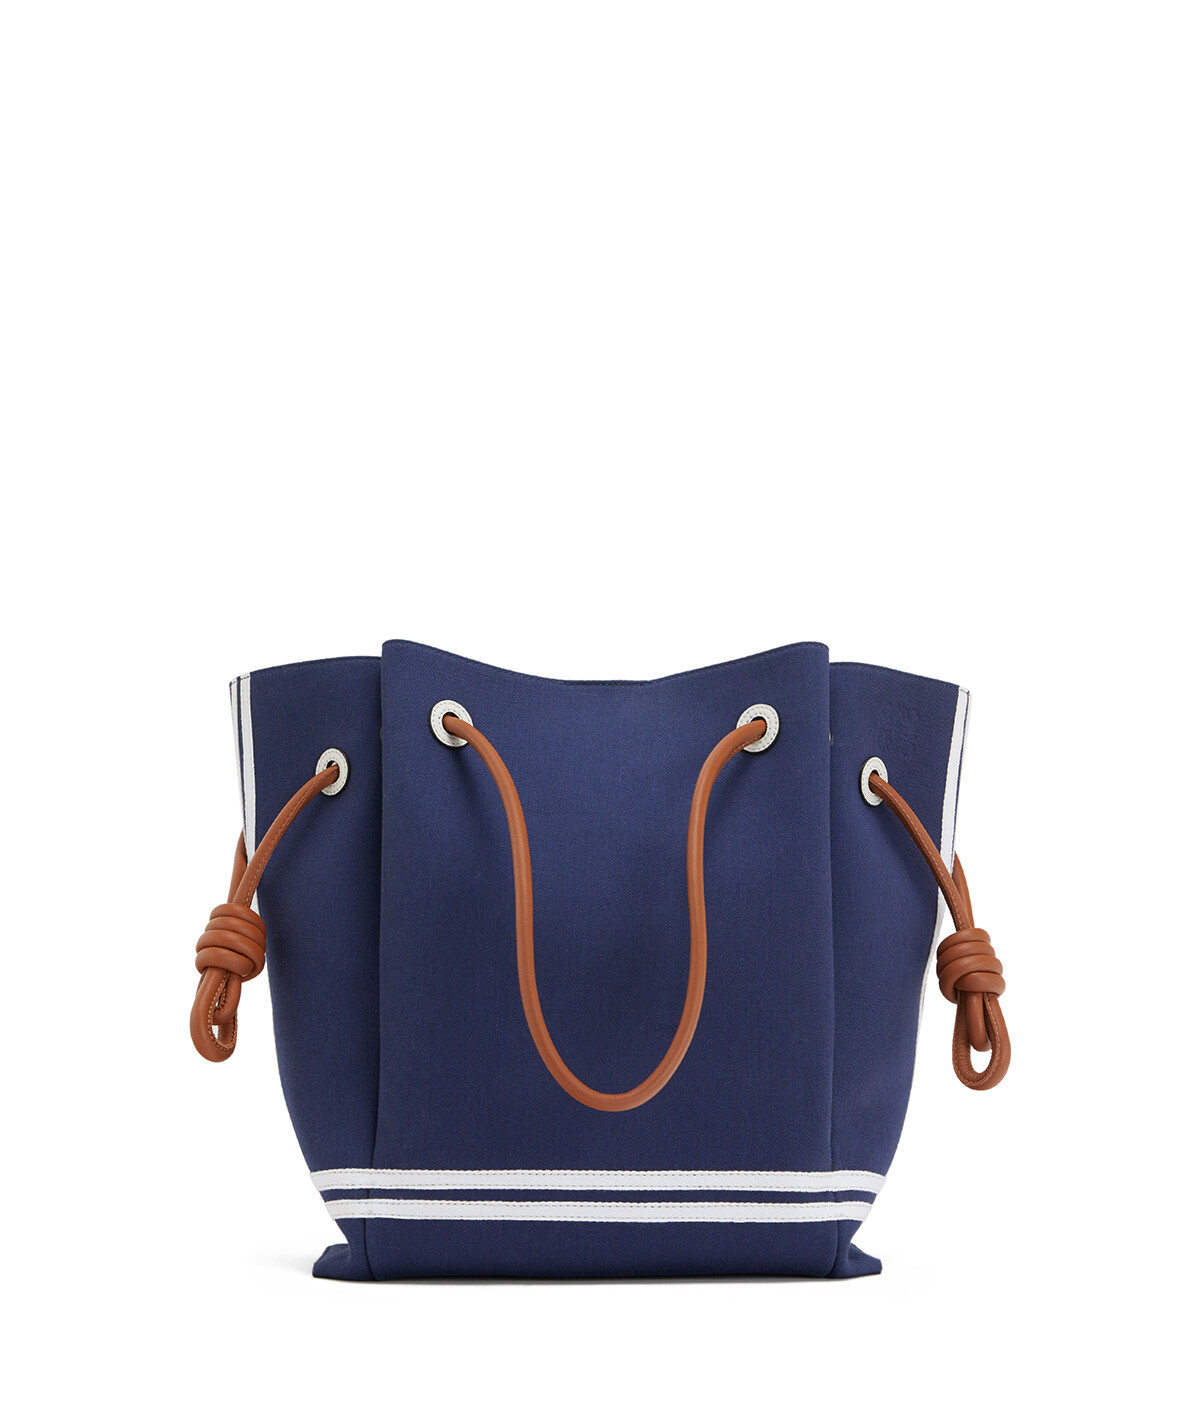 LOEWE Flamenco Knot Tote Sailor Deep Blue/Soft White front